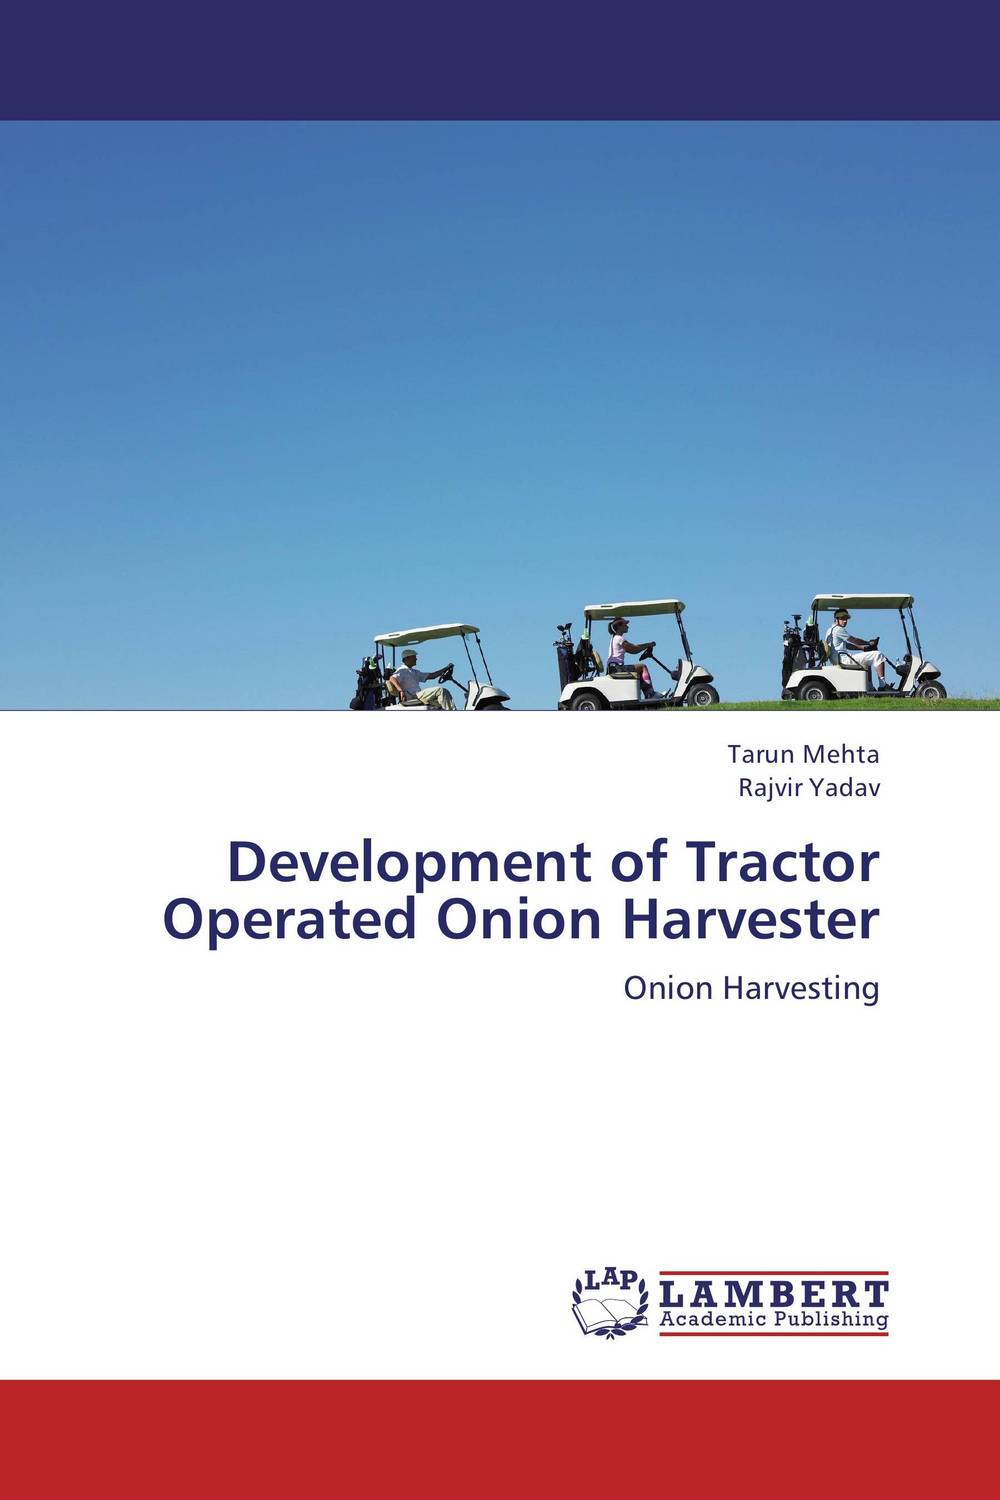 Development of Tractor Operated Onion Harvester мачете parang halfachance™ half a chance designed by ken onion